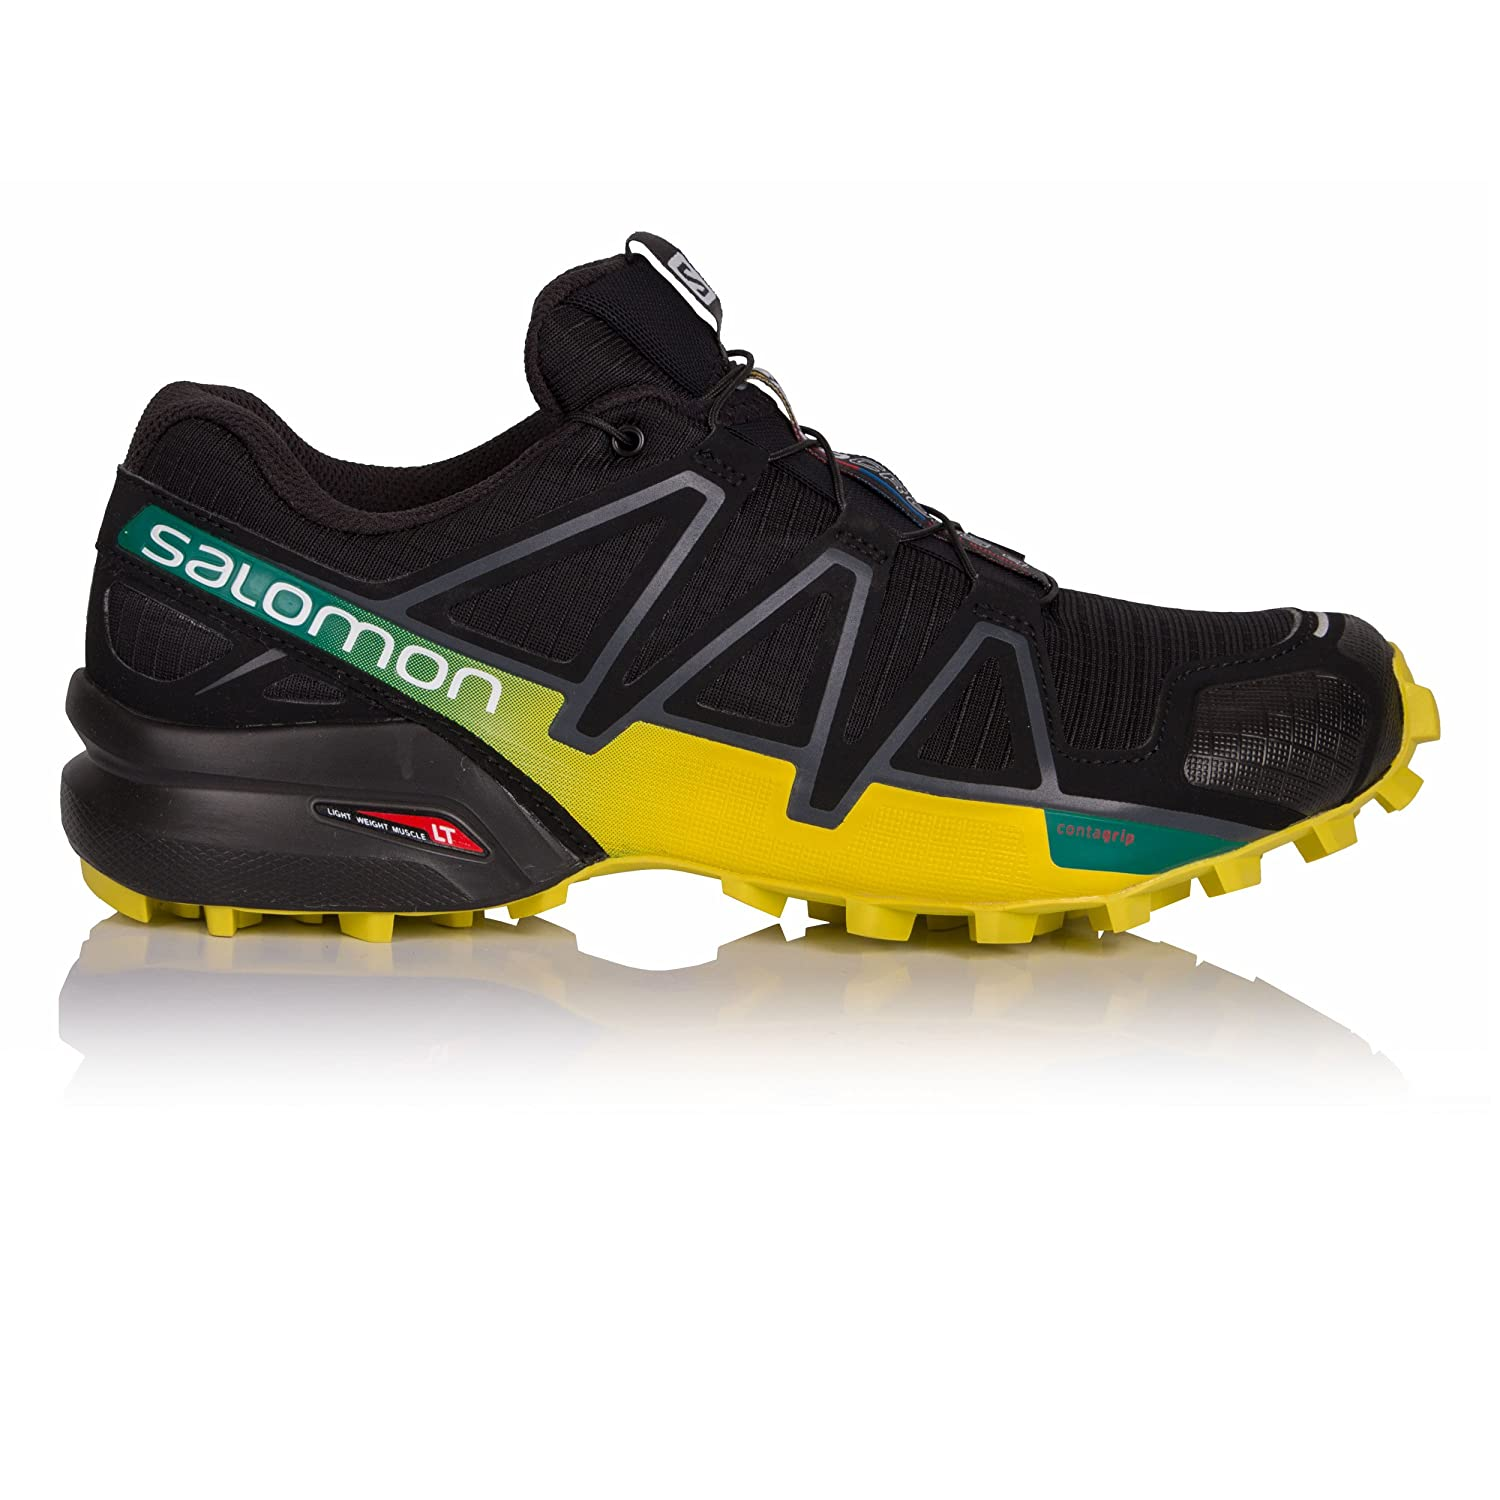 Salomon Men's Speedcross 4 Trail Runner B07DT6JNRJ 12 D(M) US|Black/Everglade/Sulphur Spring